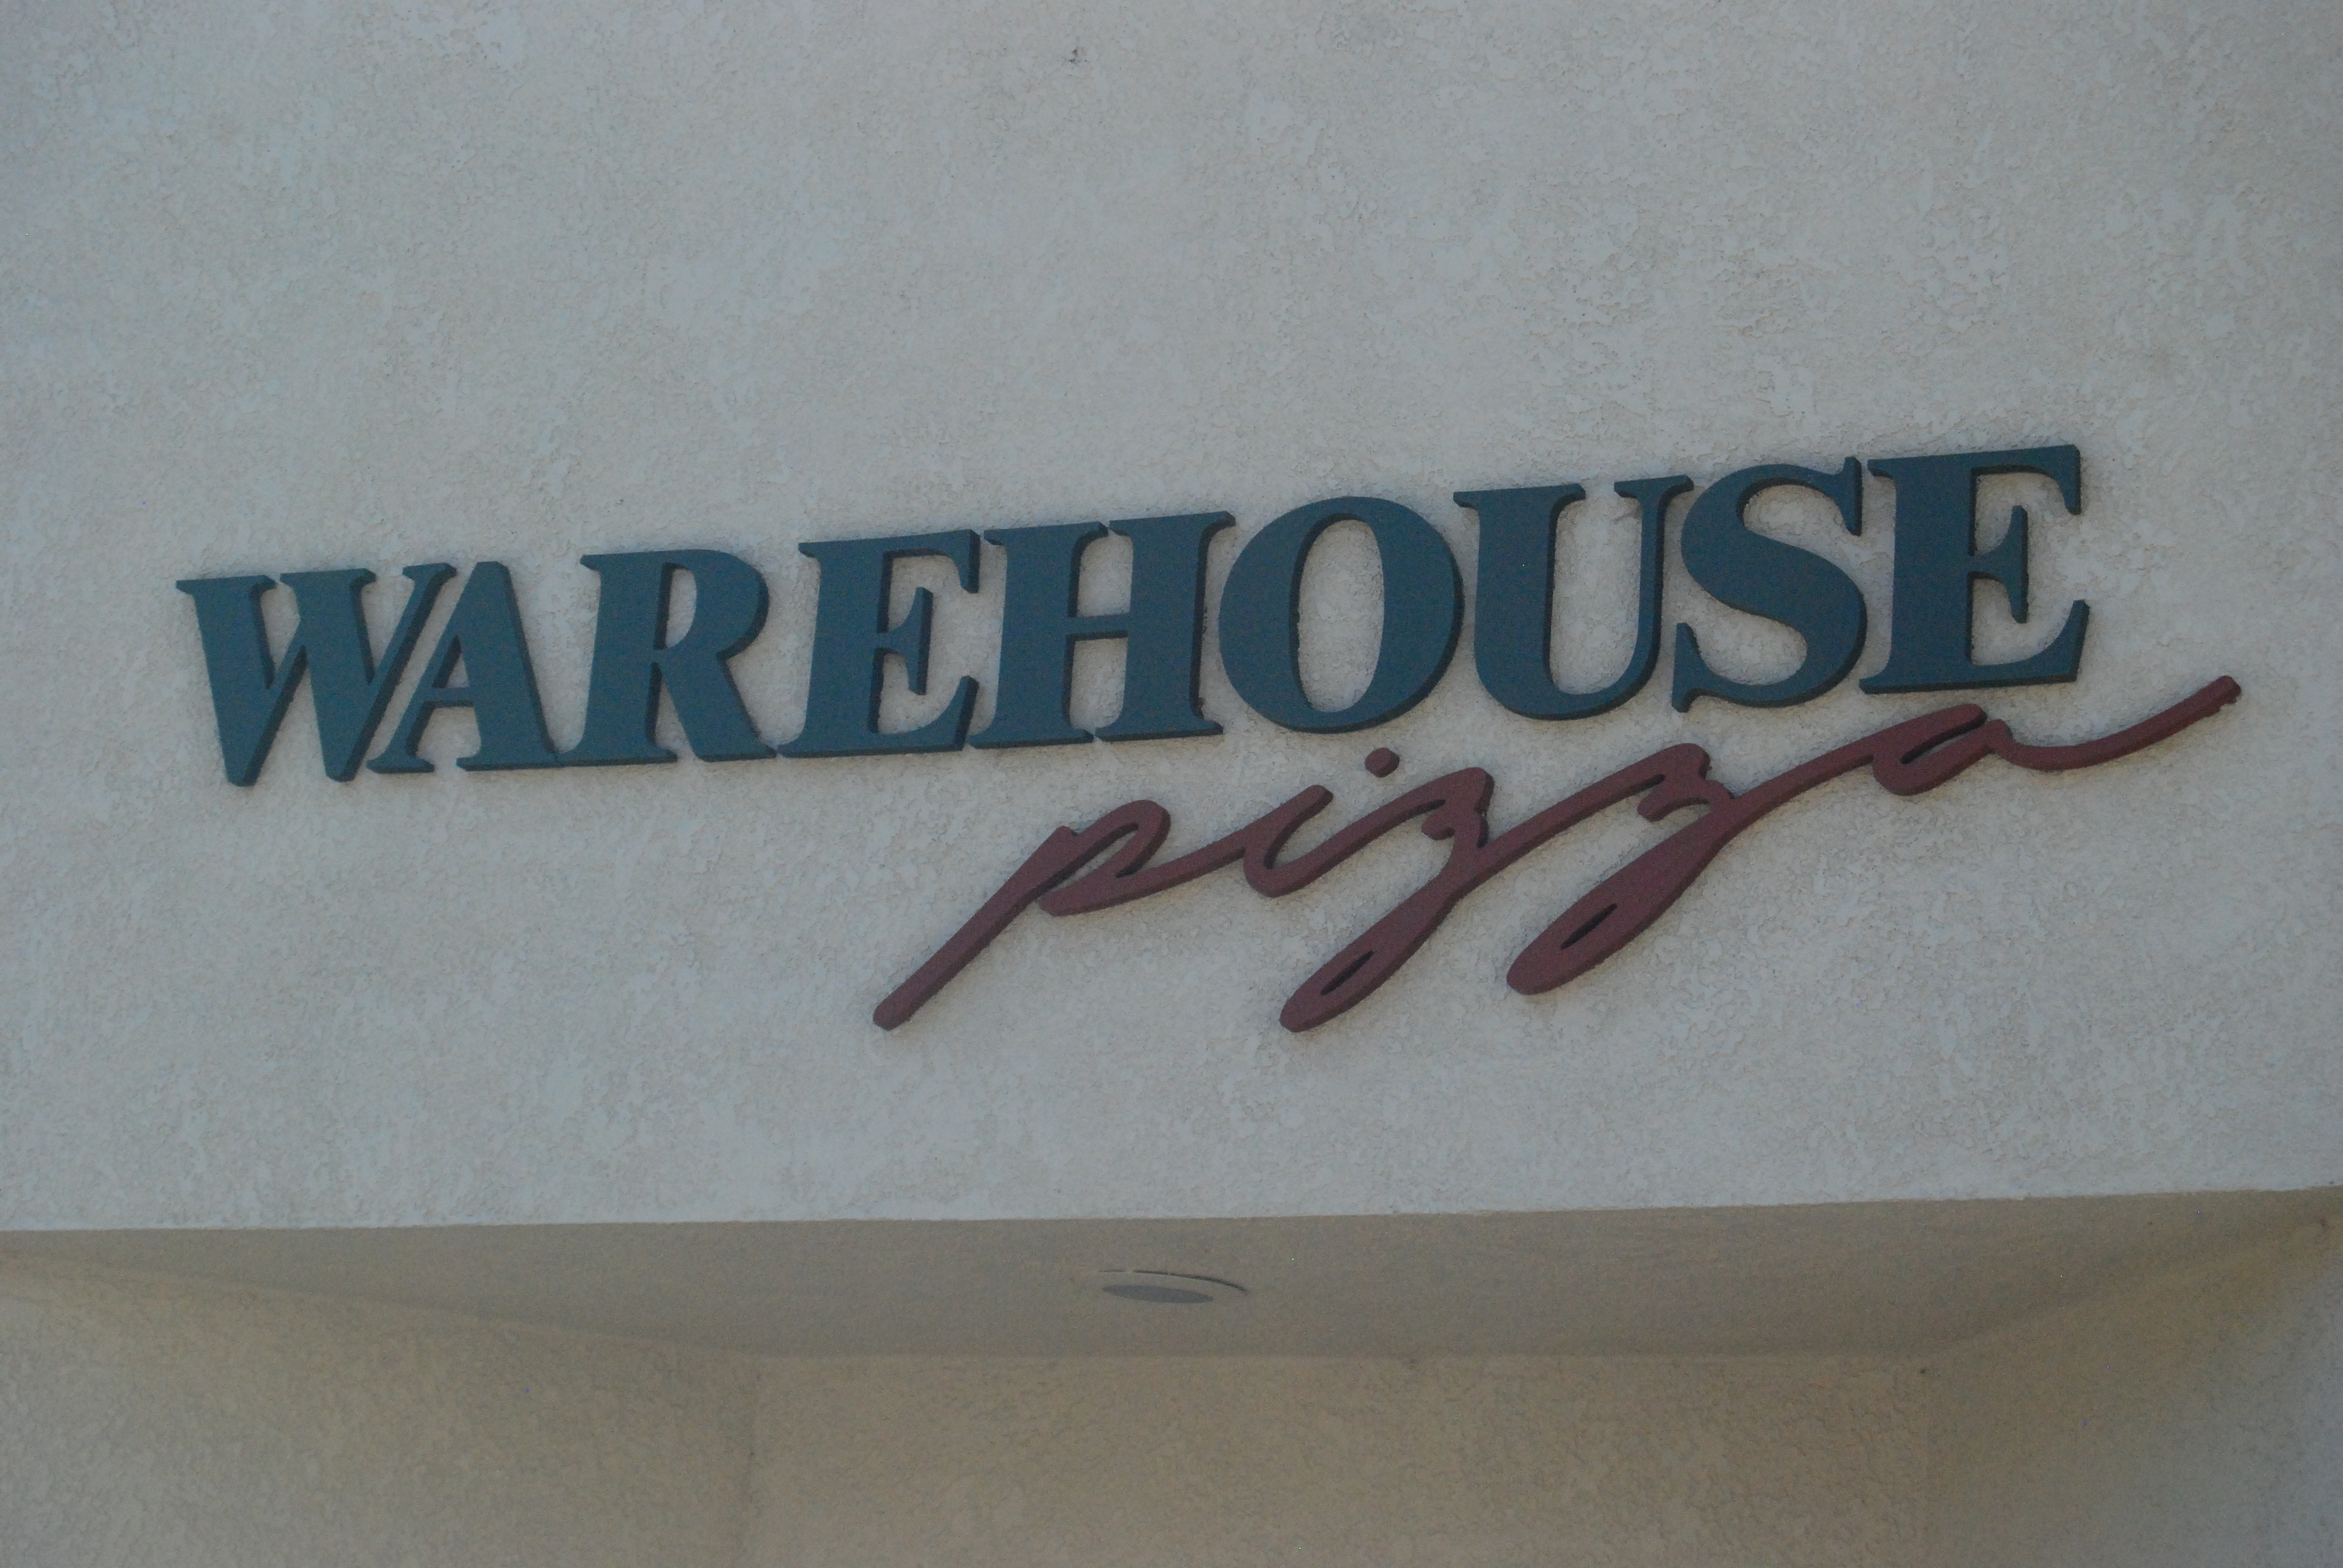 warehousepizza006.JPG